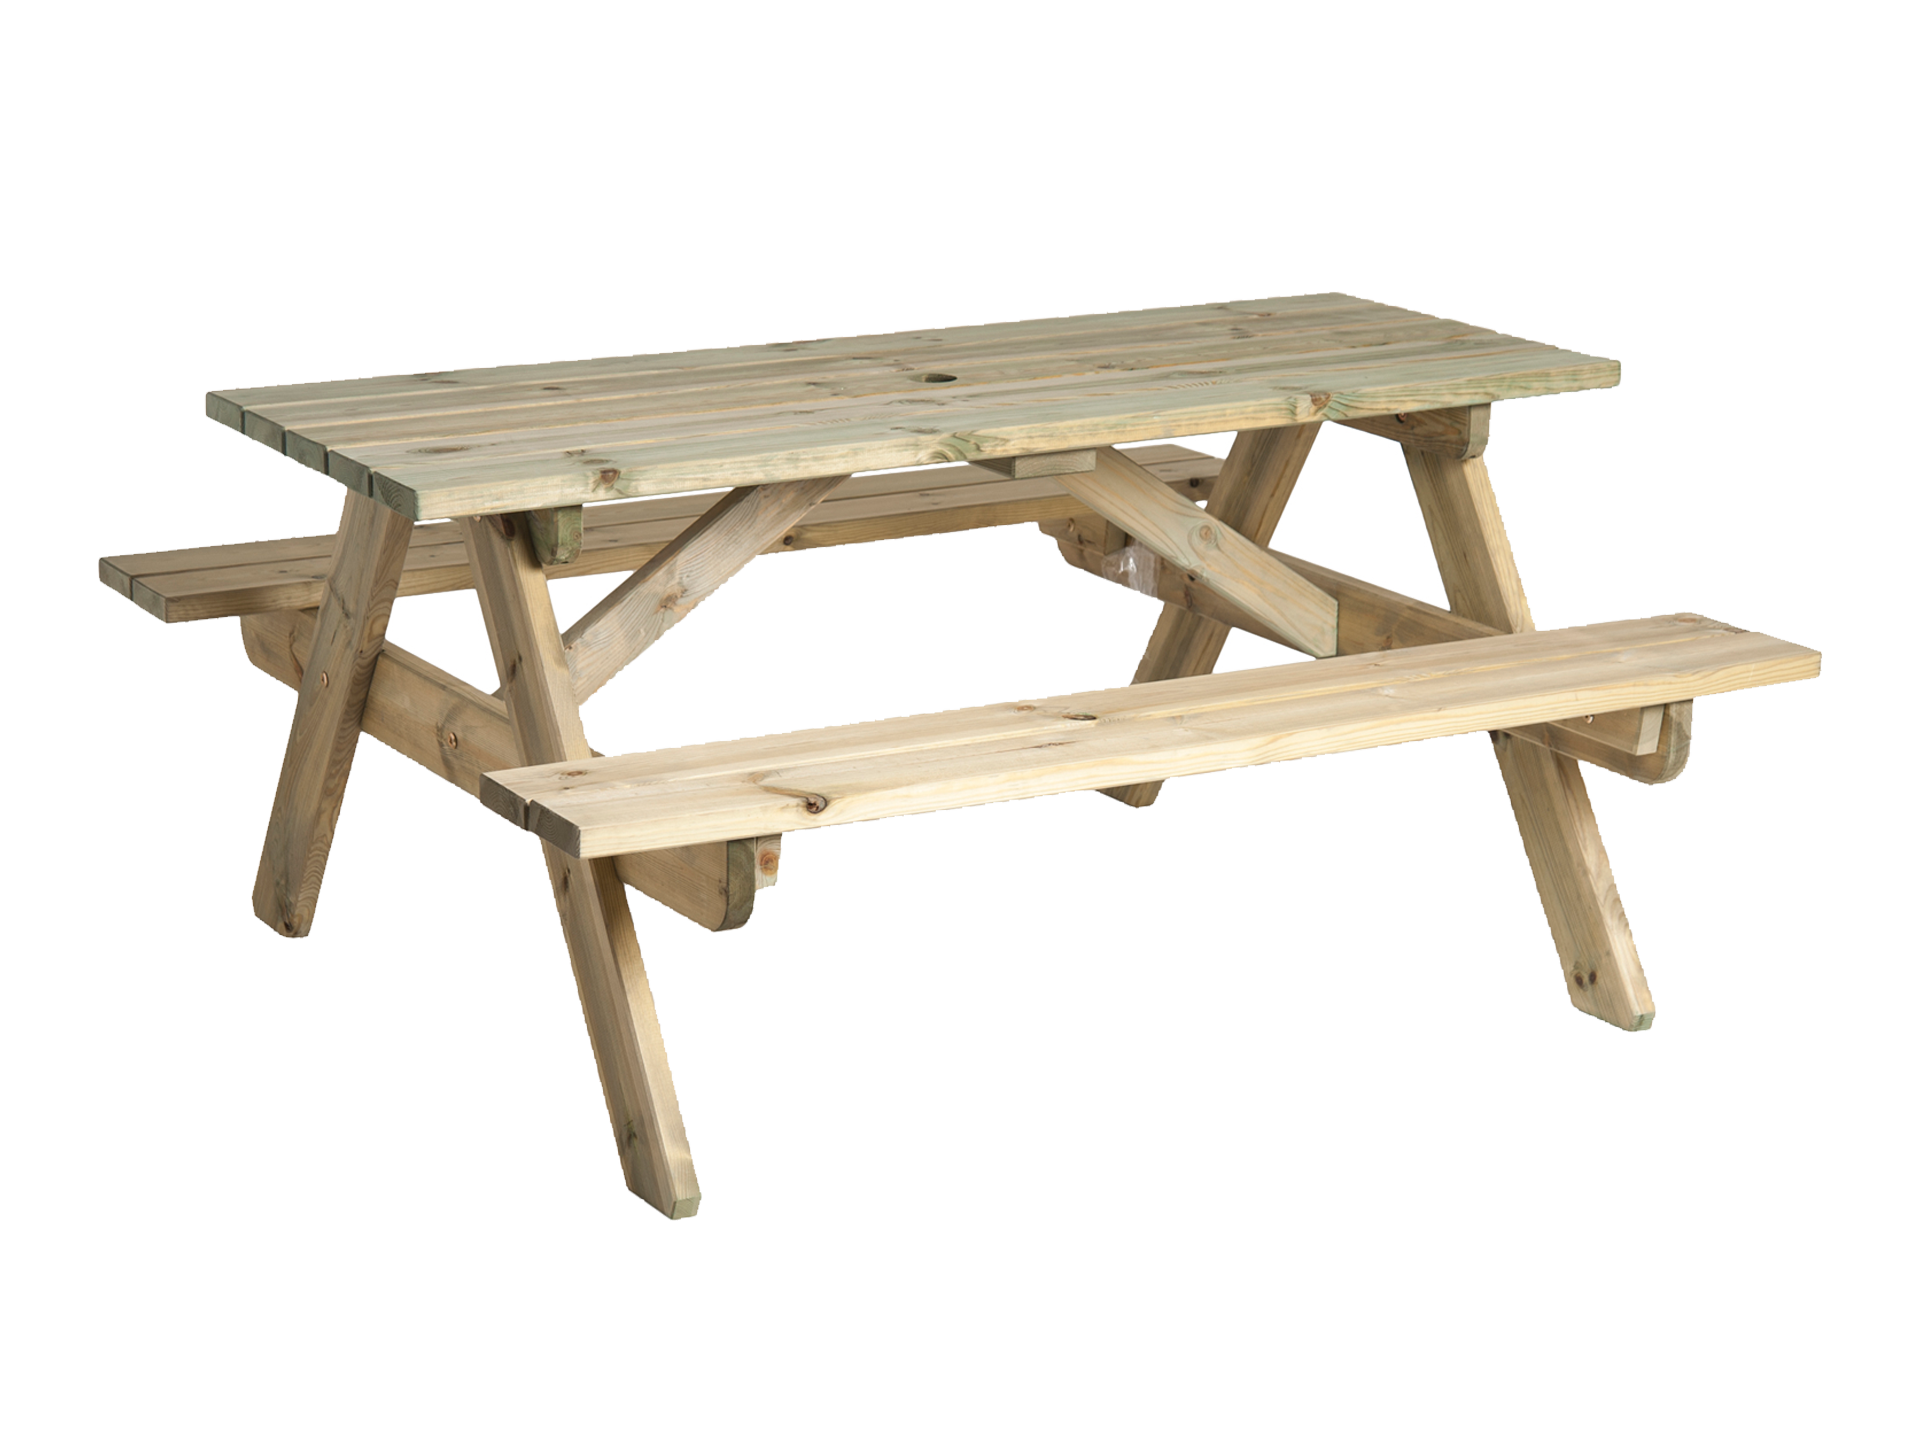 Picnic table png. Pine heavy duty ft